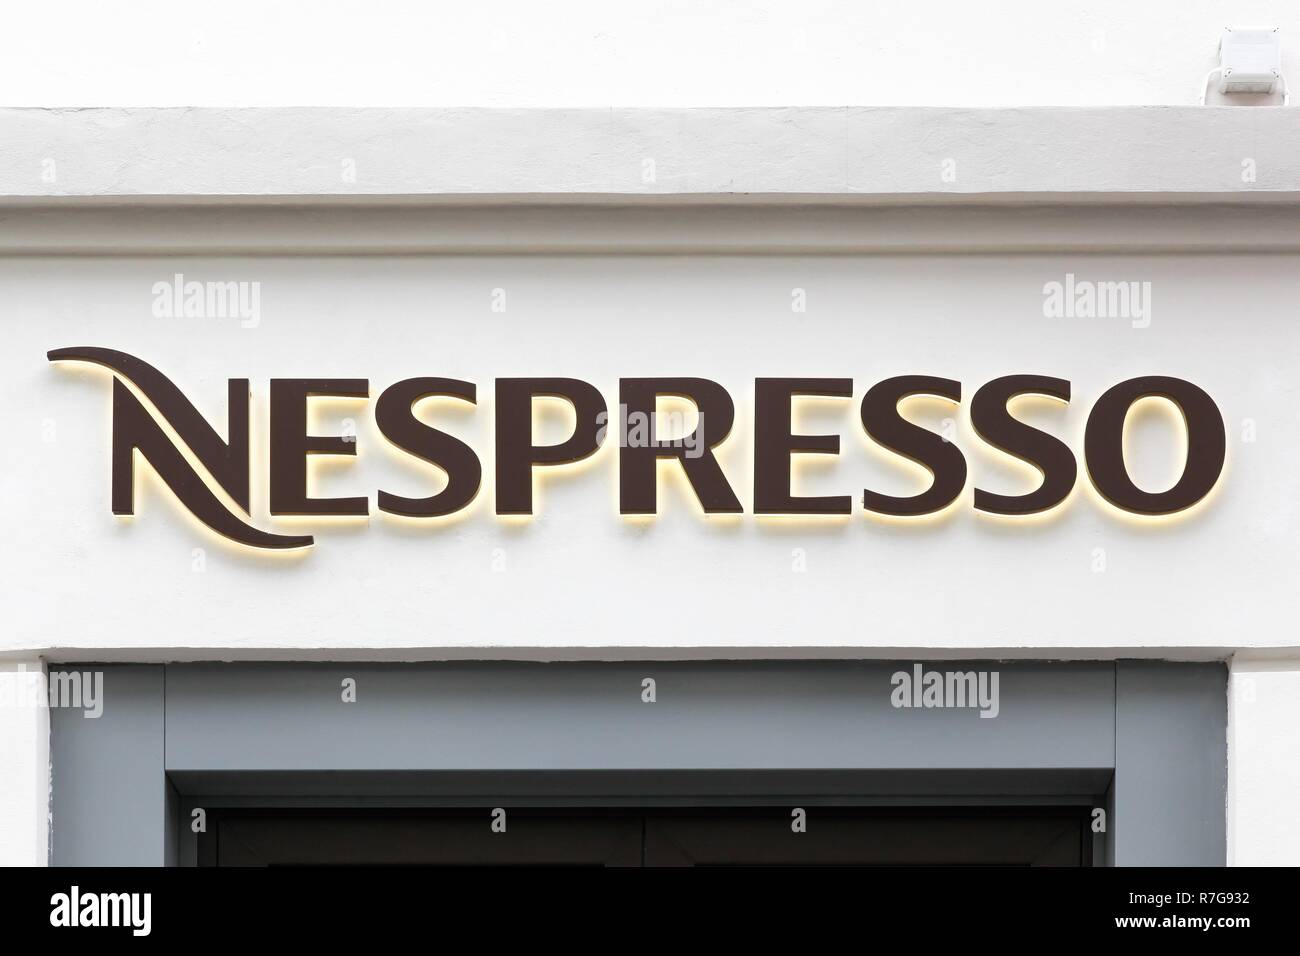 Oslo, Norway - August 27, 2018: Nespresso logo on a store. Nespresso is the brand name of Nestle Nespresso - Stock Image